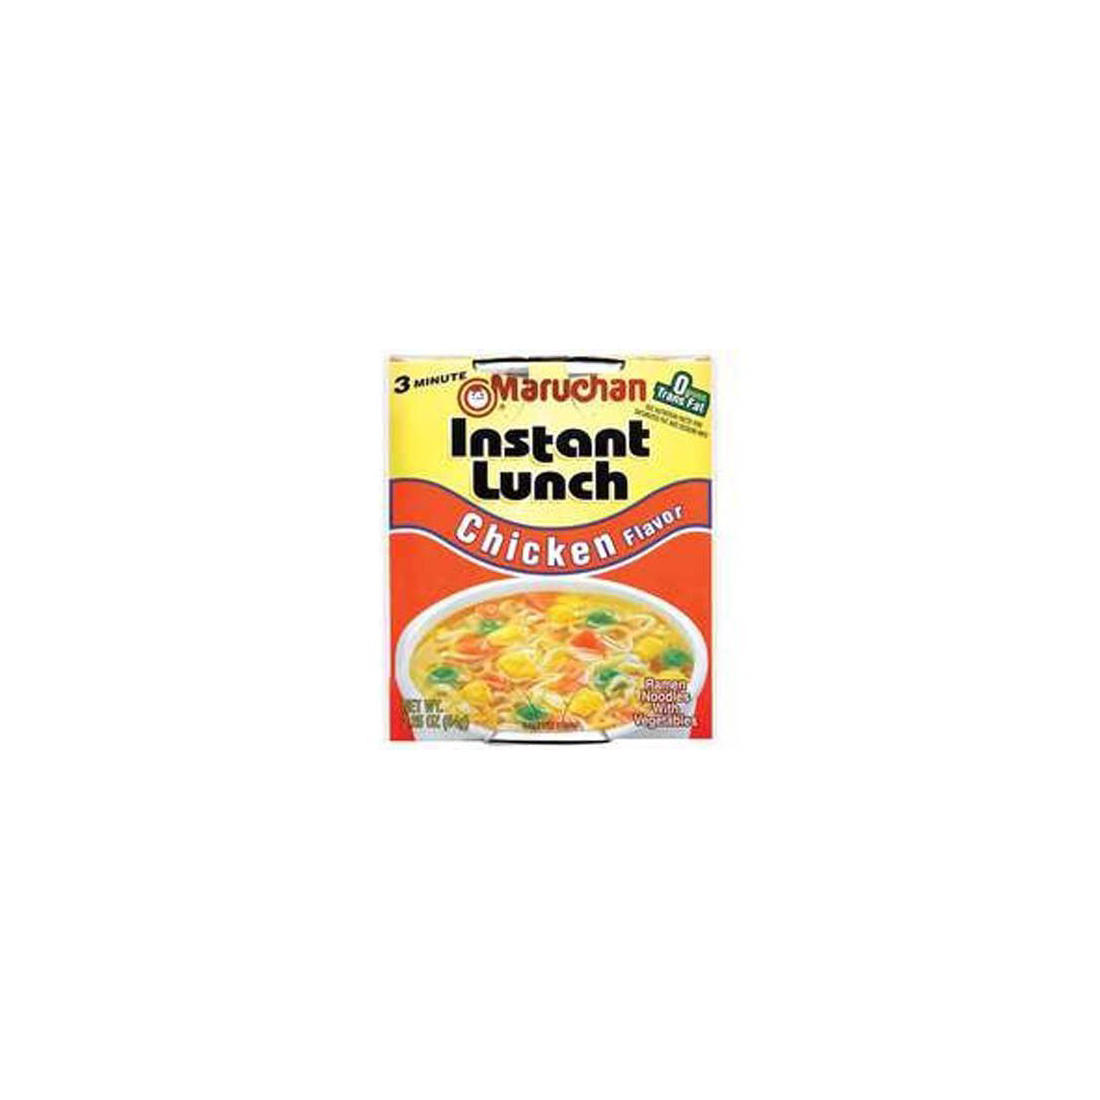 Maruchan Instant Lunch Chicken Flavored Noodle Bowls, 24 ct